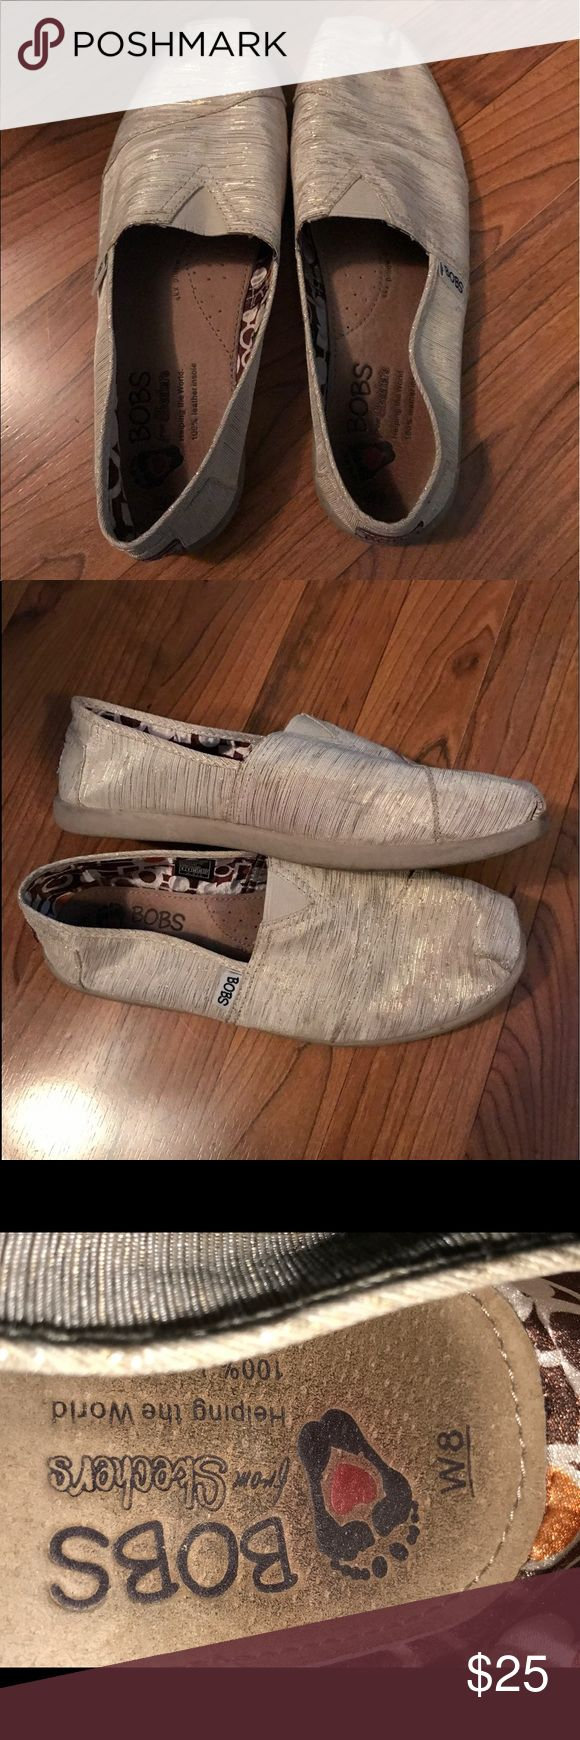 🌹🌹BOBS SHOES 🌹🌹 This is a very cute pair of BOBS for women in a size 8w. They are in great condition. The colo is s shimmering gold. BOBS Shoes Flats & Loafers